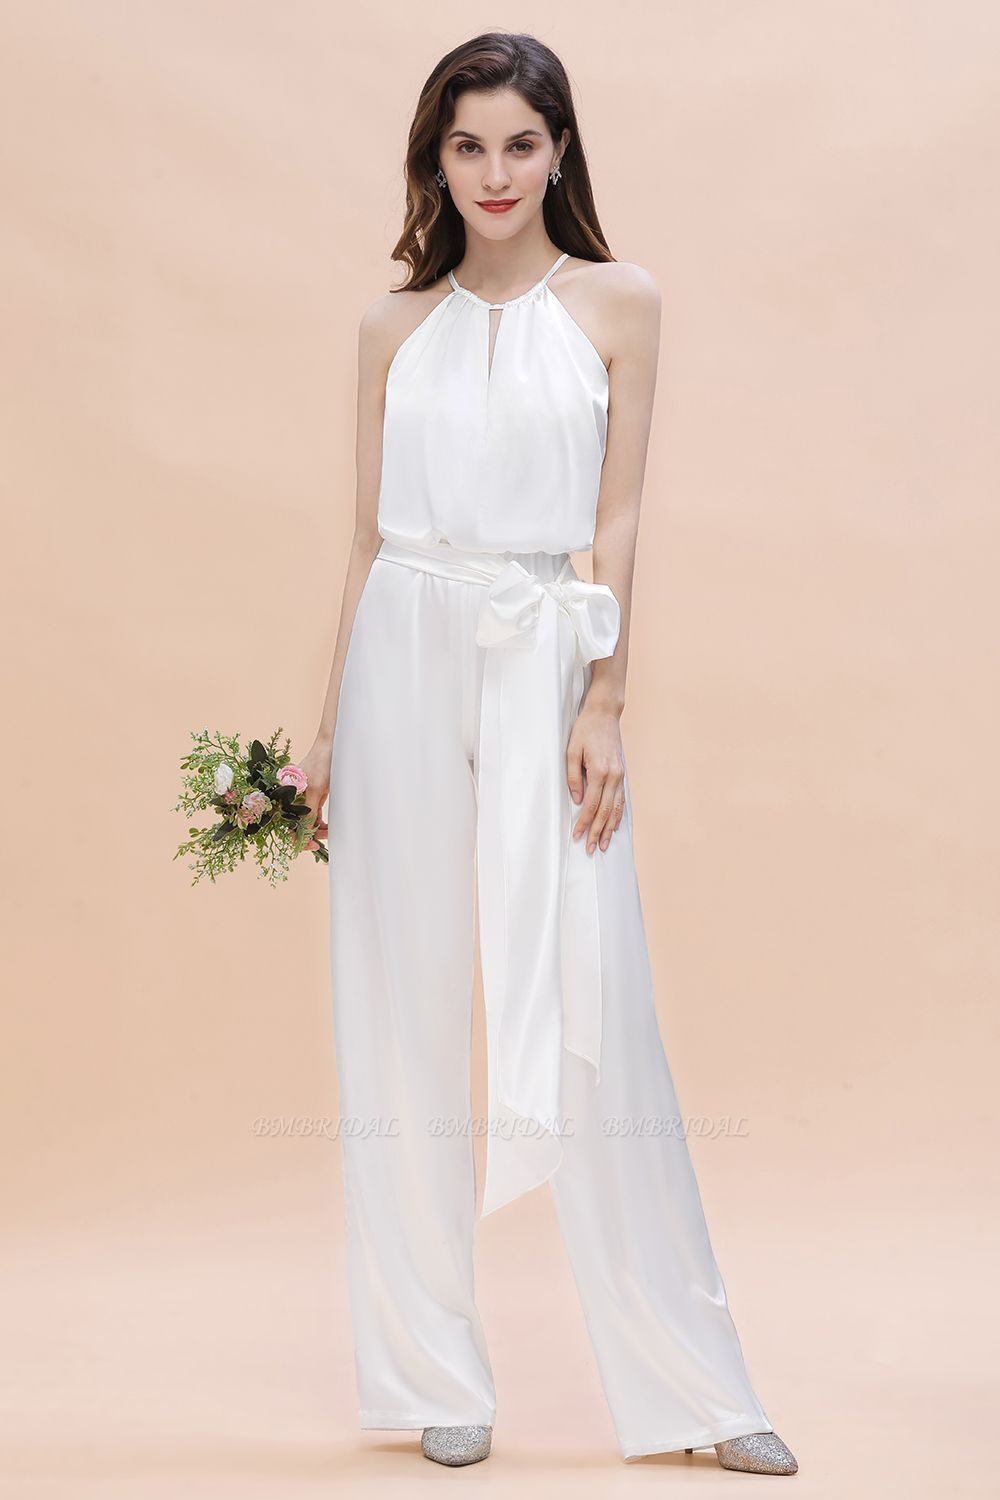 BMbridal Affordable Halter Sleeveless Ivory Charmeuse Bridesmaid Jumpsuit Online